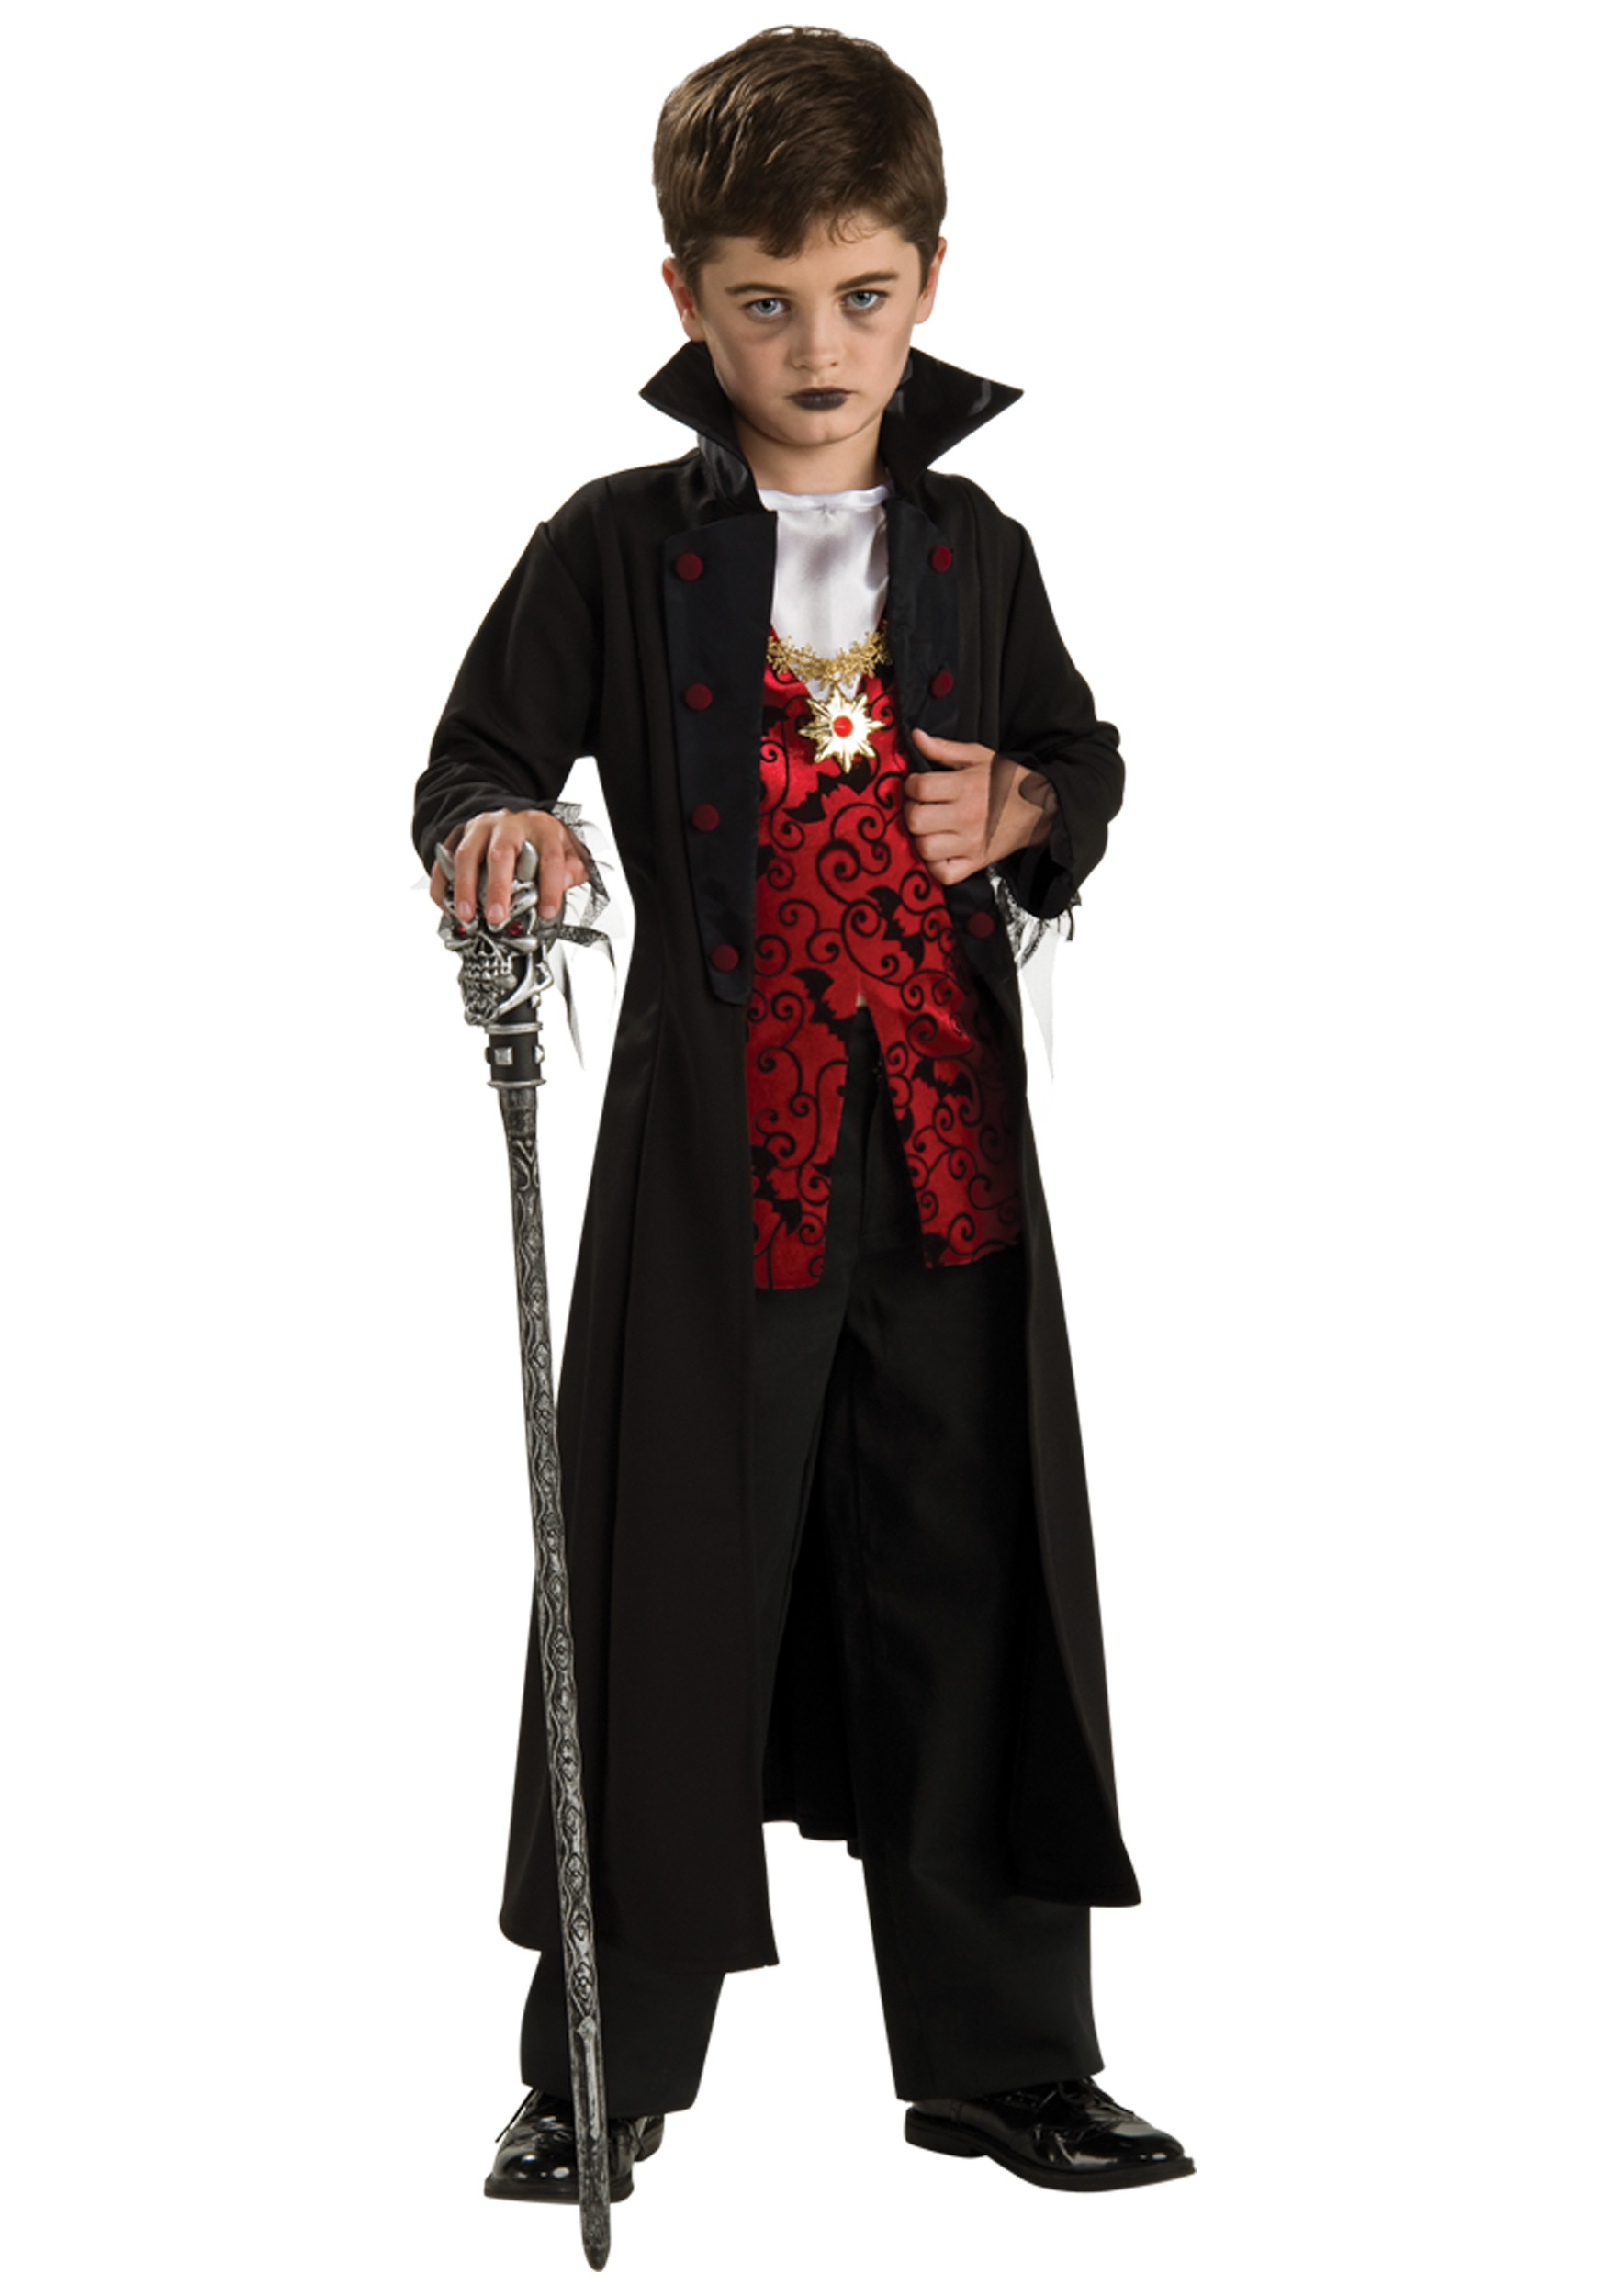 Boys V&ire Prince Costume  sc 1 st  Halloween Costume : kids prince costumes  - Germanpascual.Com